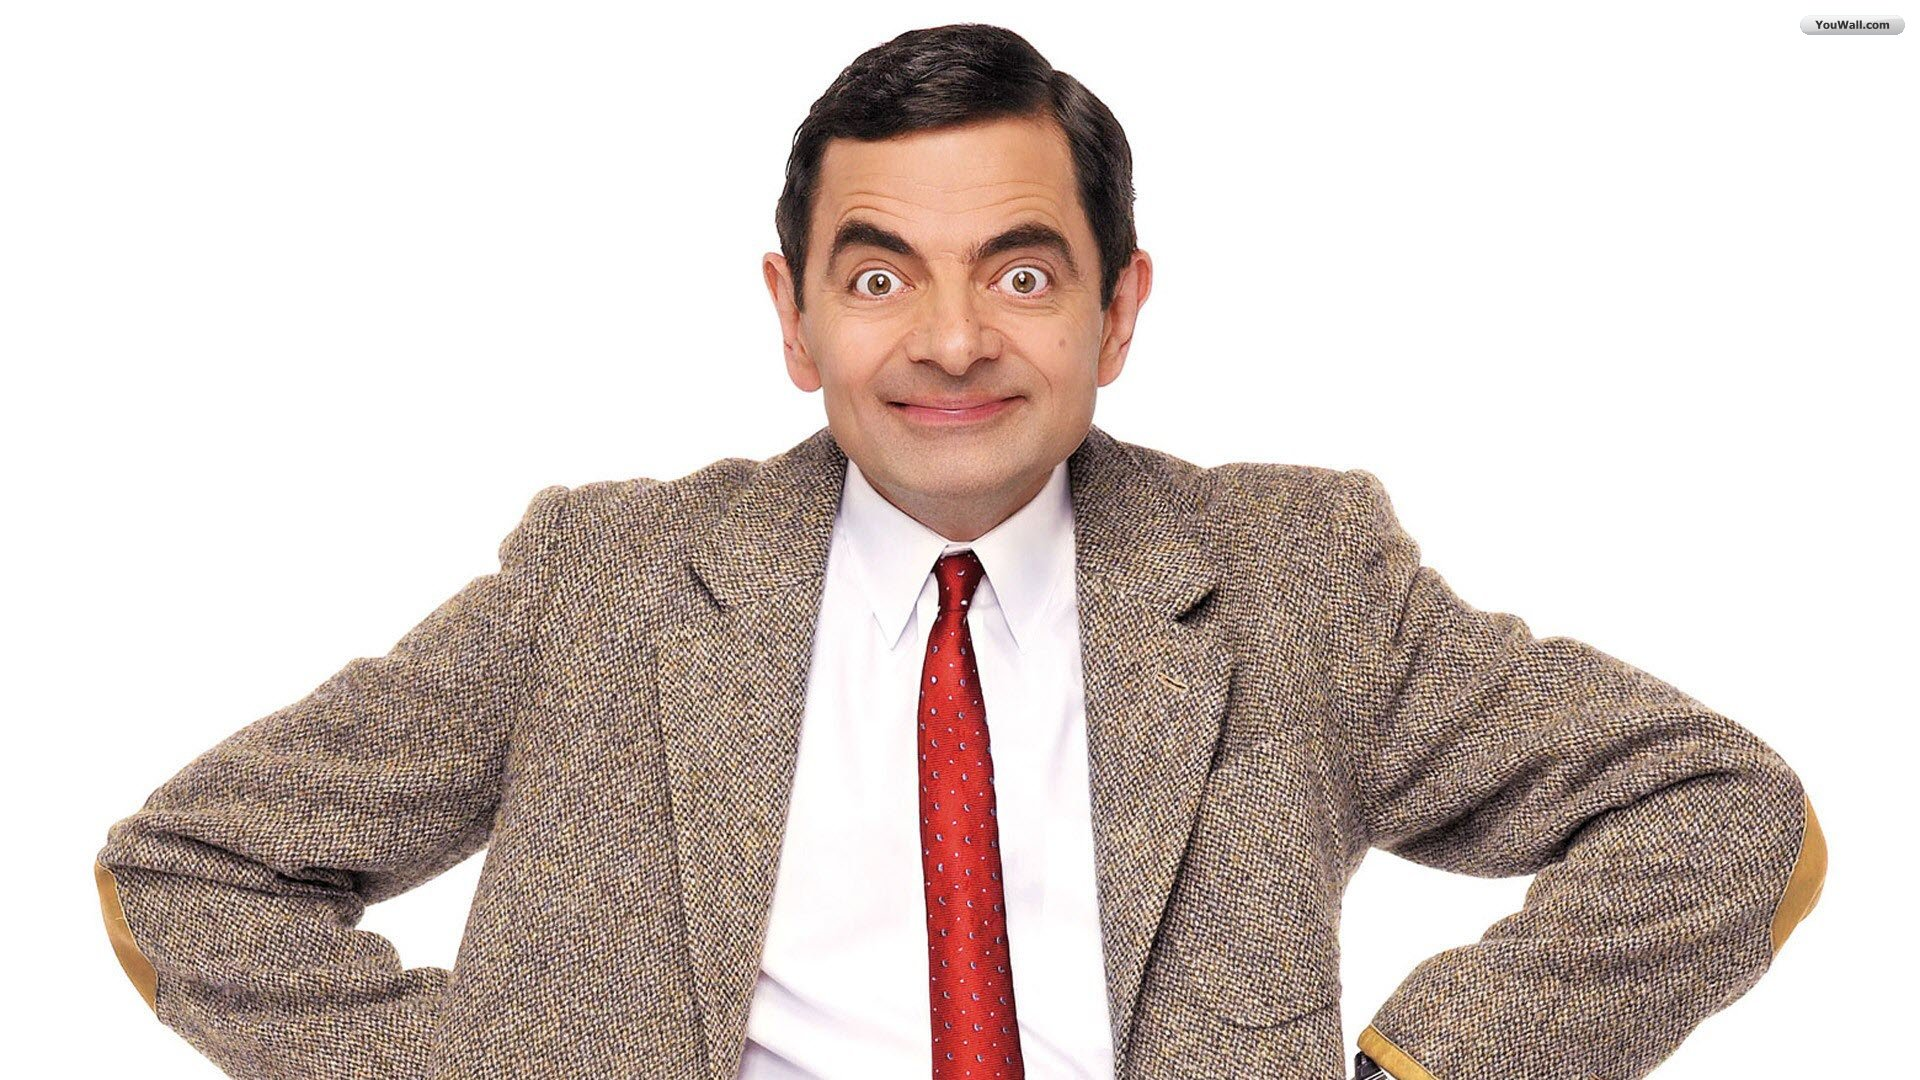 Mr.Bean Wallpaper